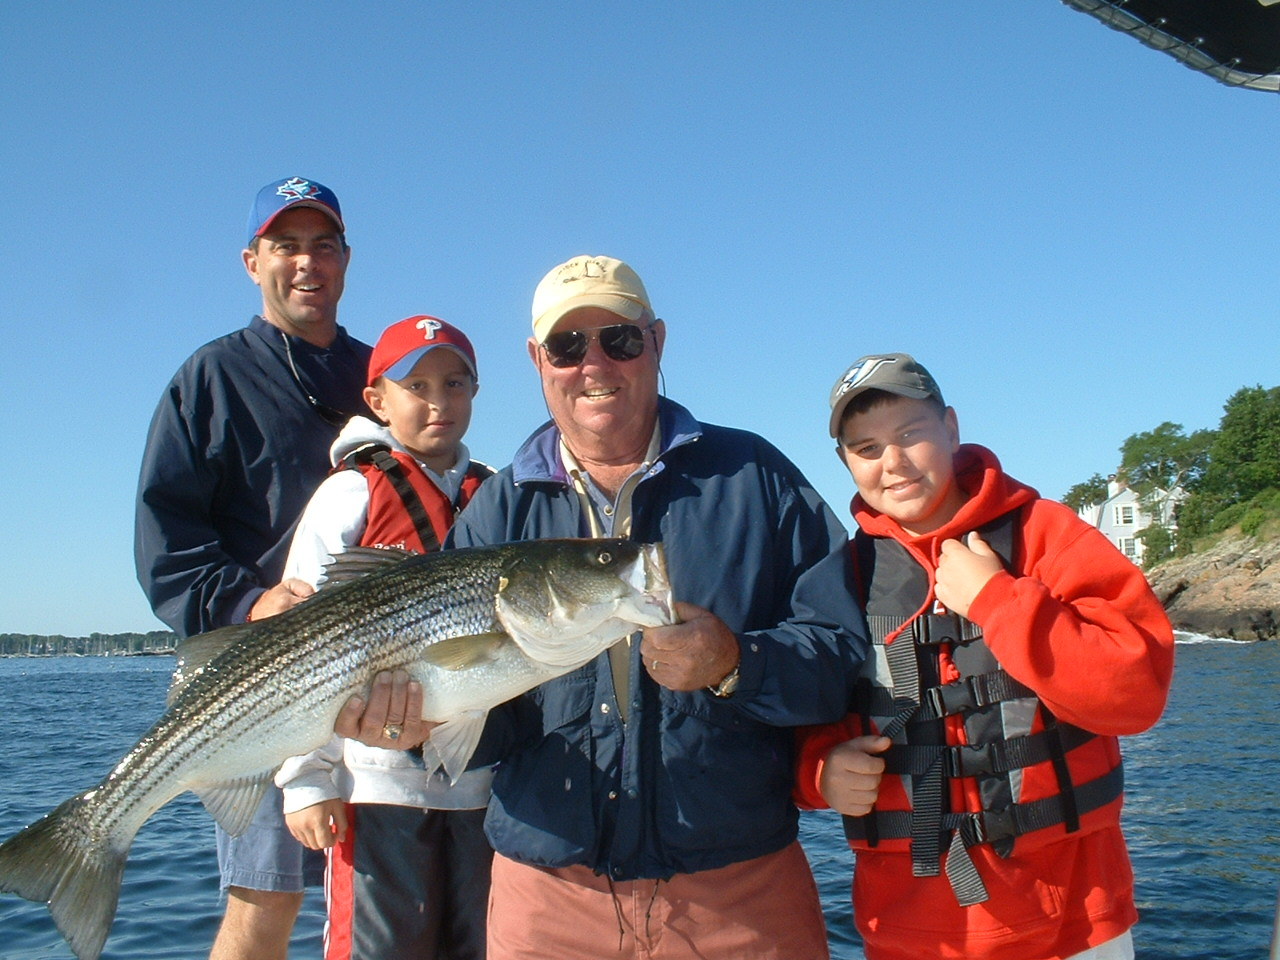 fishing pictures 434.jpg